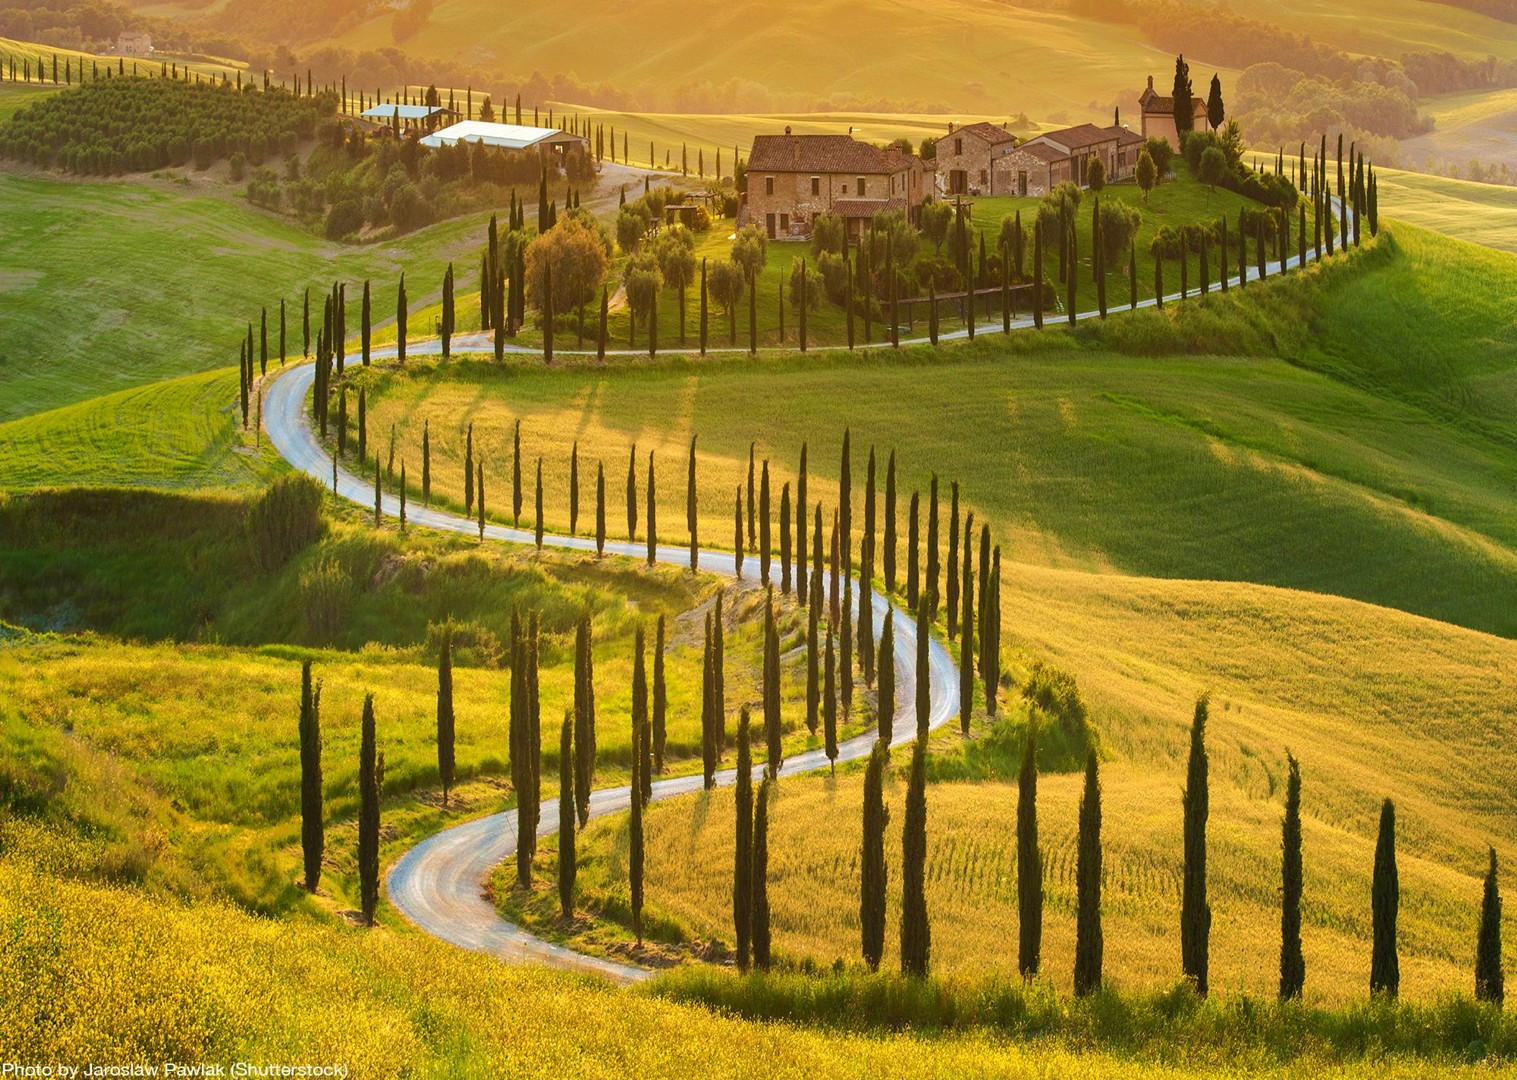 cypress-snakes-tuscany-leisure-bike-tour-self-guided.jpg - Italy - Tuscany - Giro della Toscana - Guided Road Cycling Holiday - Road Cycling